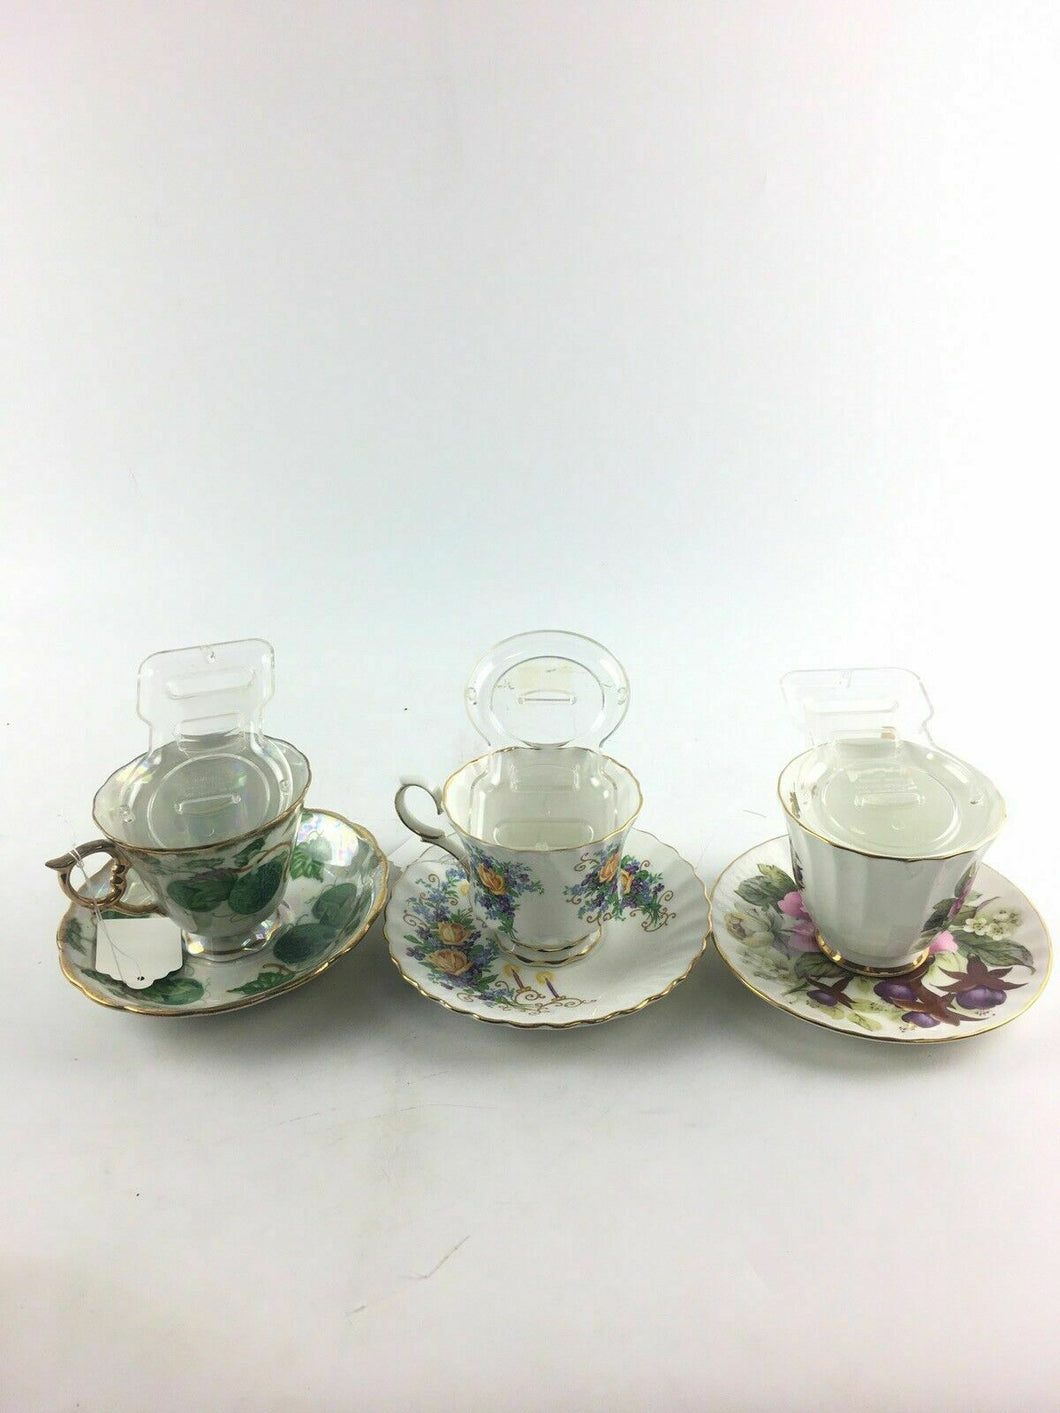 3 Decorative Teacup Sets 4591